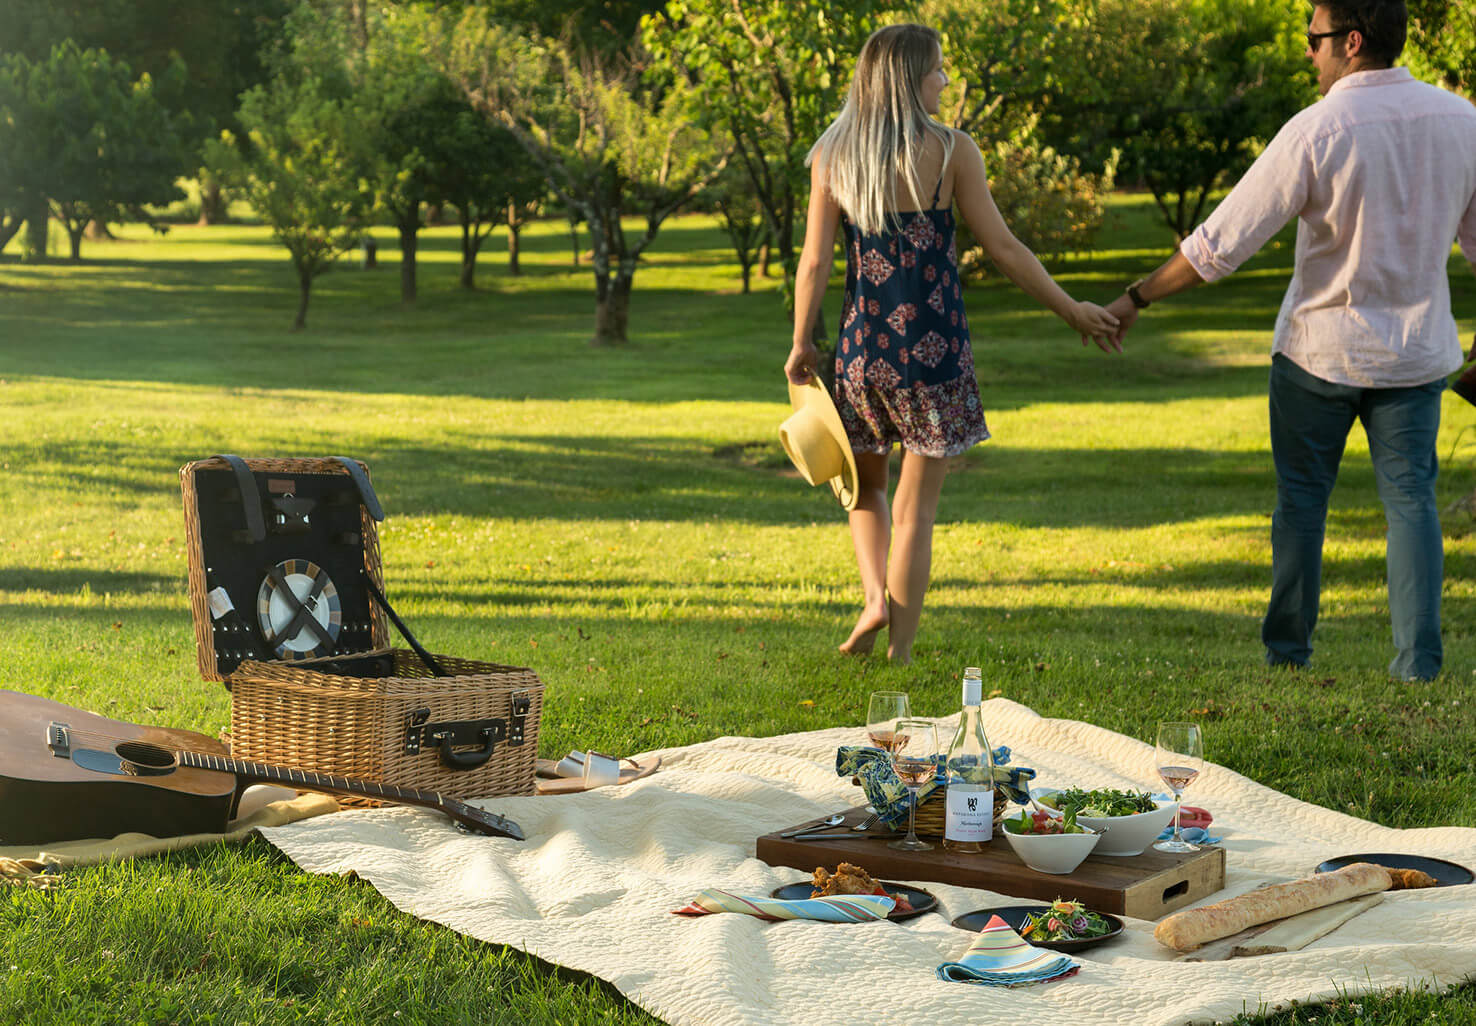 Romantic picnic and couple holding hands